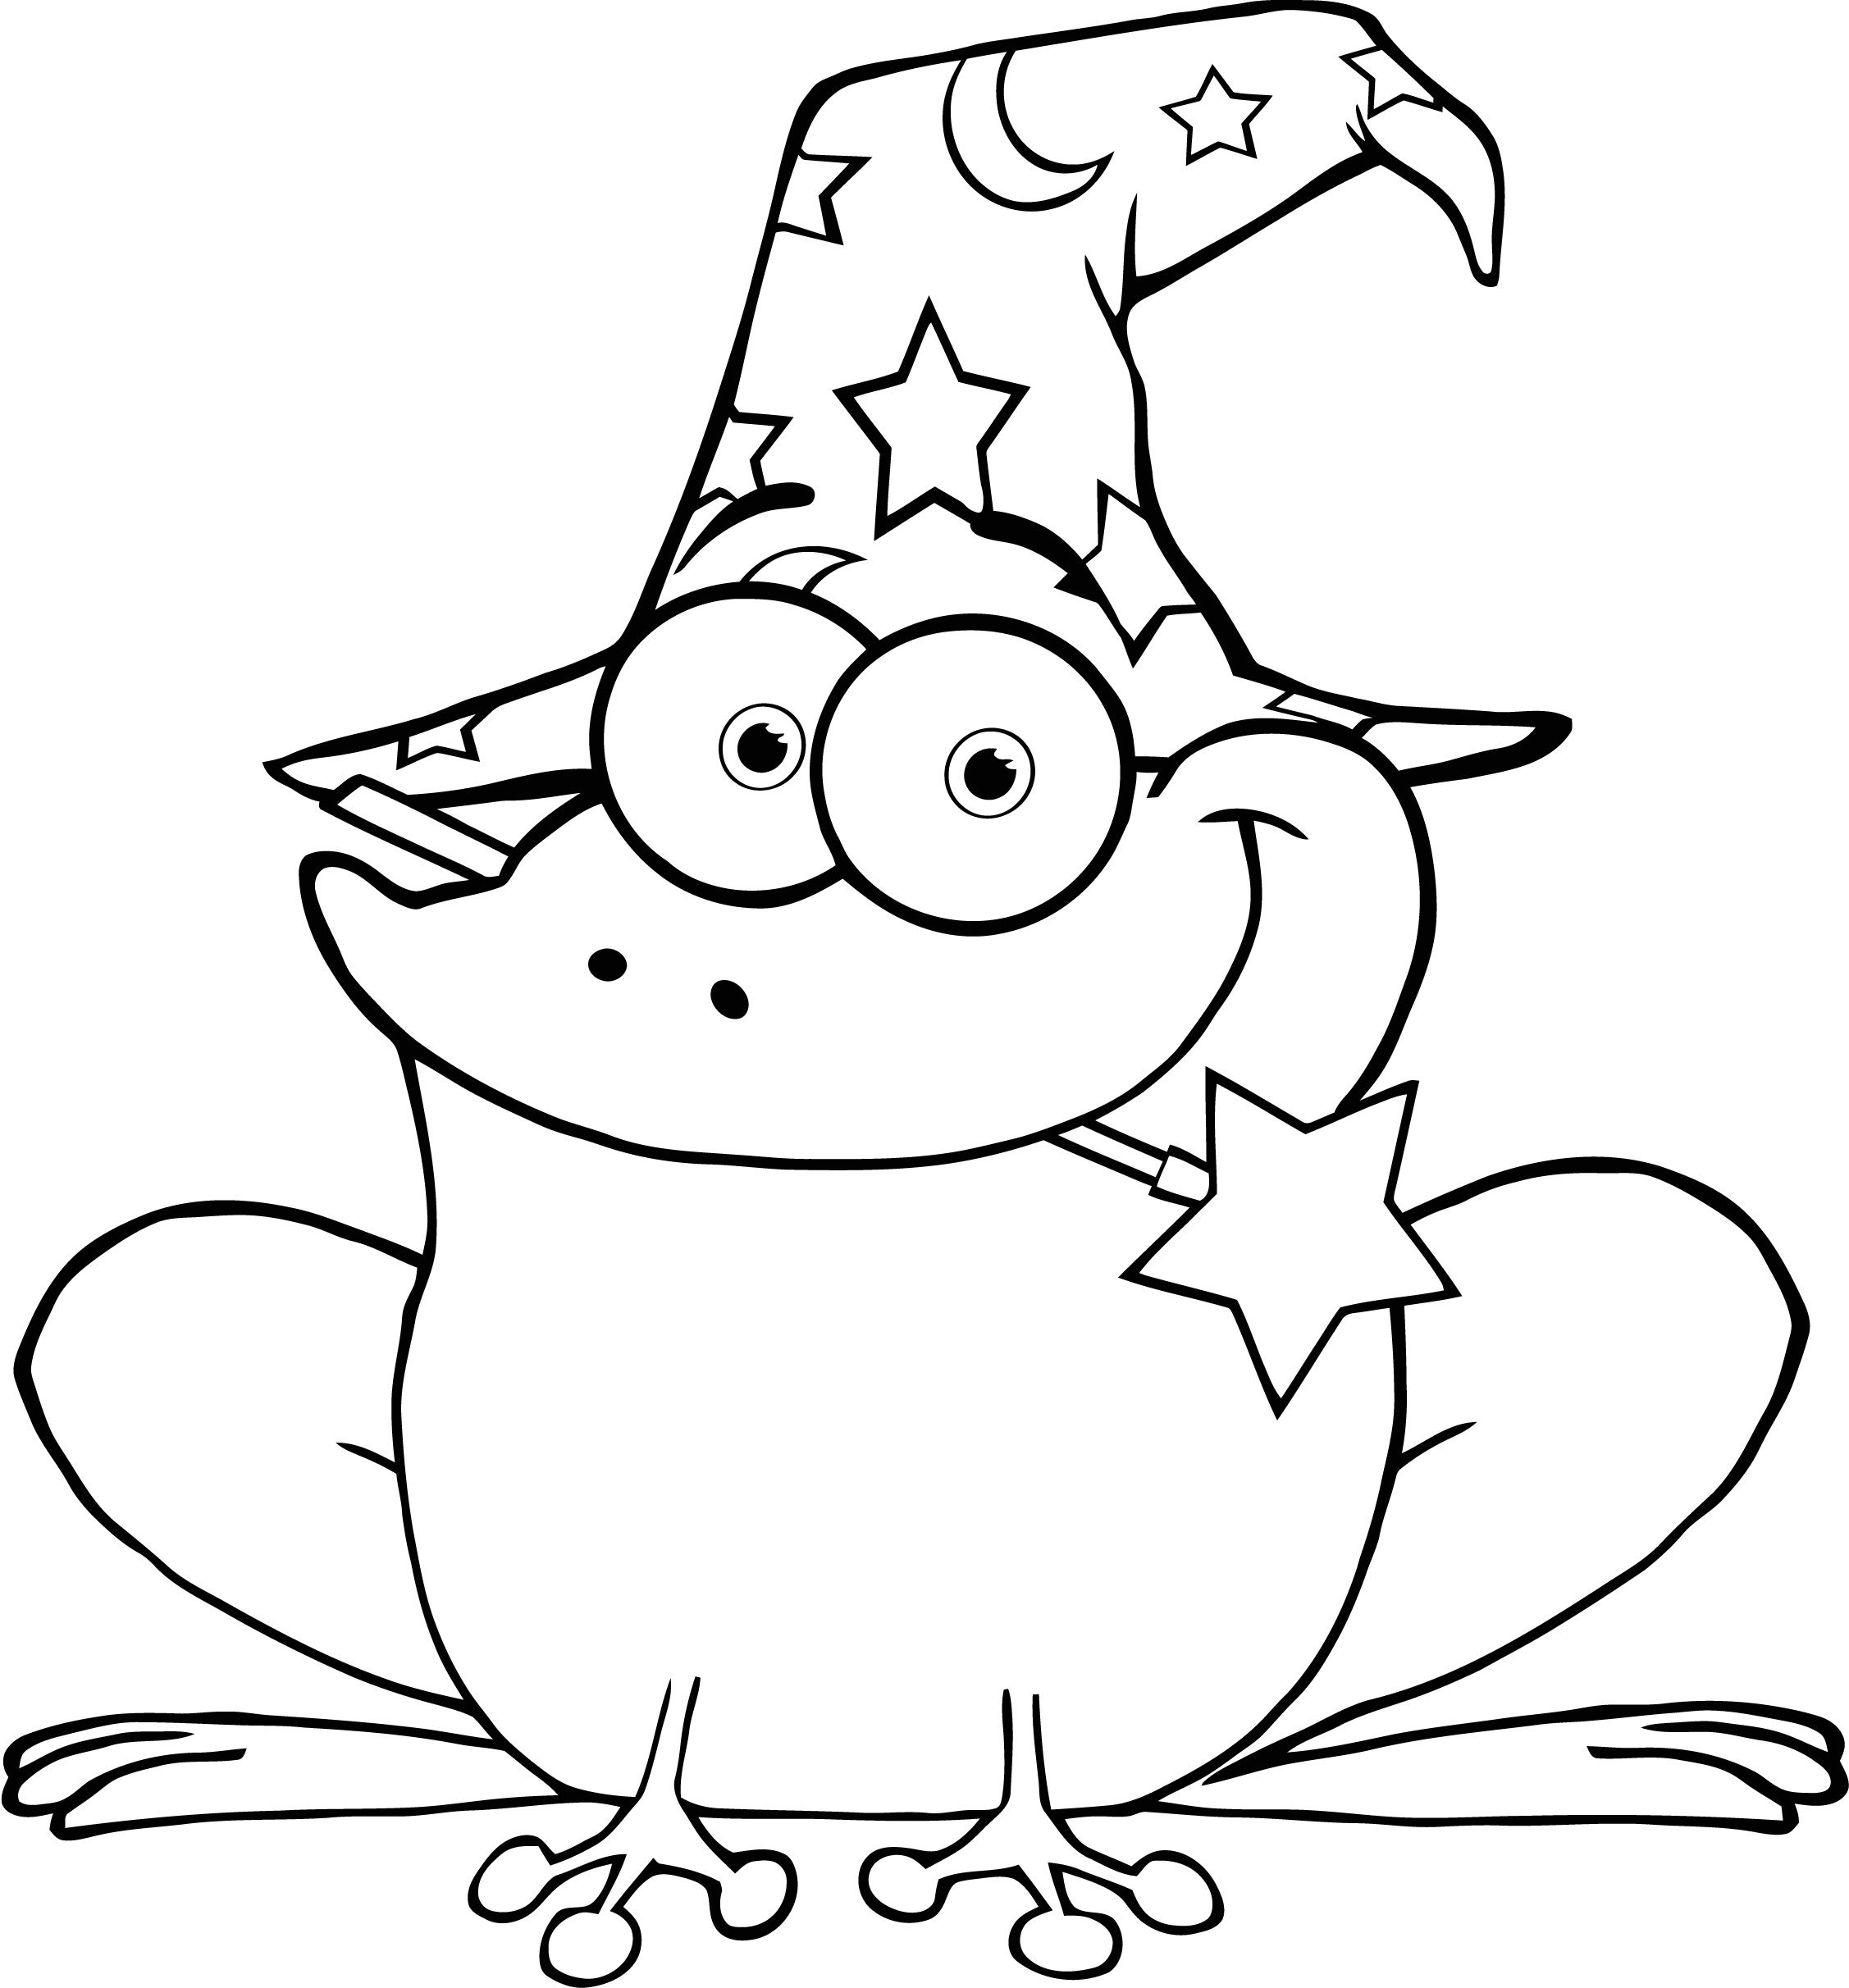 Cute Frog Coloring Pages for Kids (With images) Frog